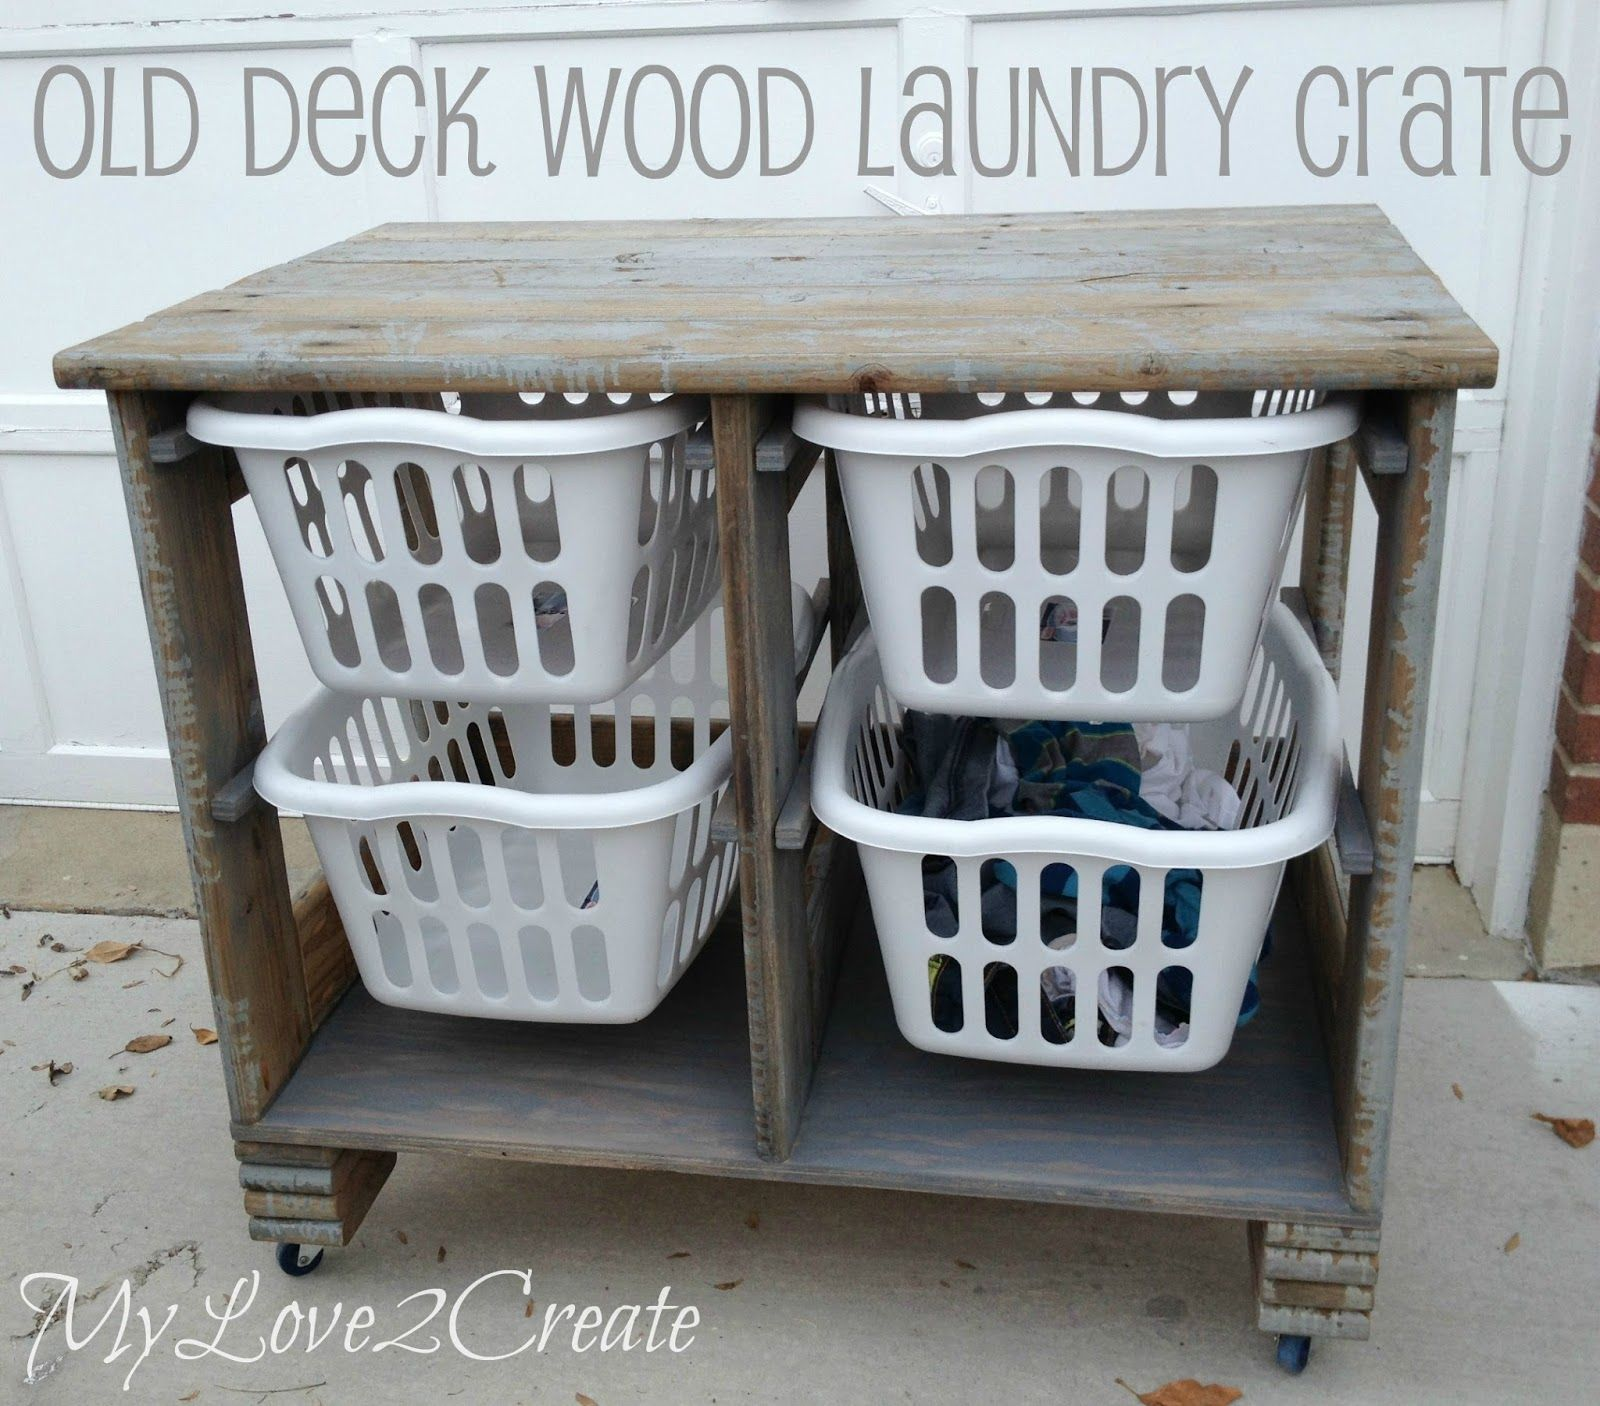 Salvaged junk hits! | Laundry, Crates and Decking